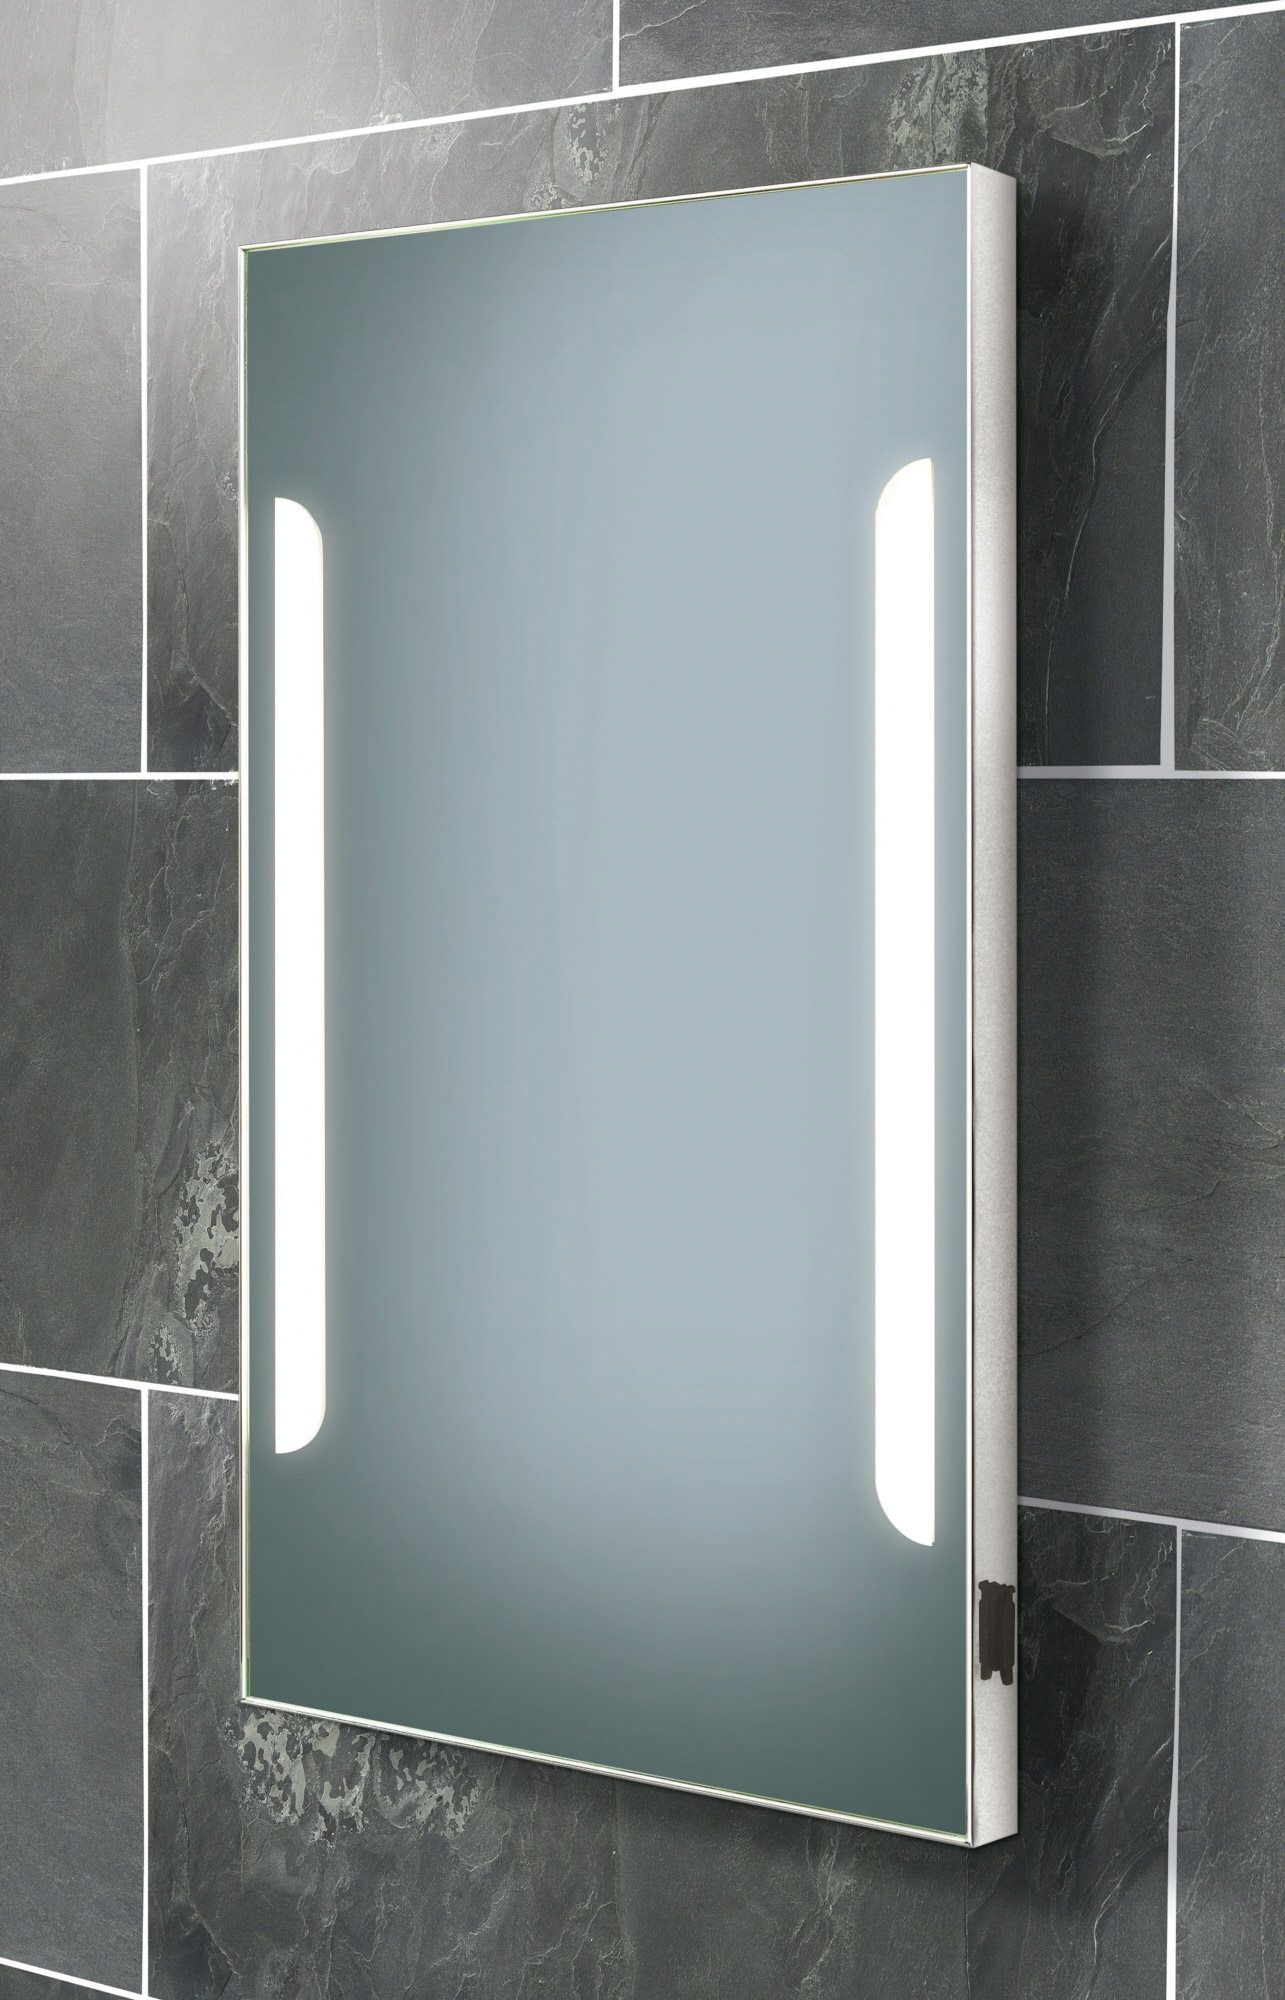 Electric Heated Bathroom Mirror In 2020 Heated Bathroom Mirror Bathroom Mirror Lights Illuminated Bathroom Cabinets